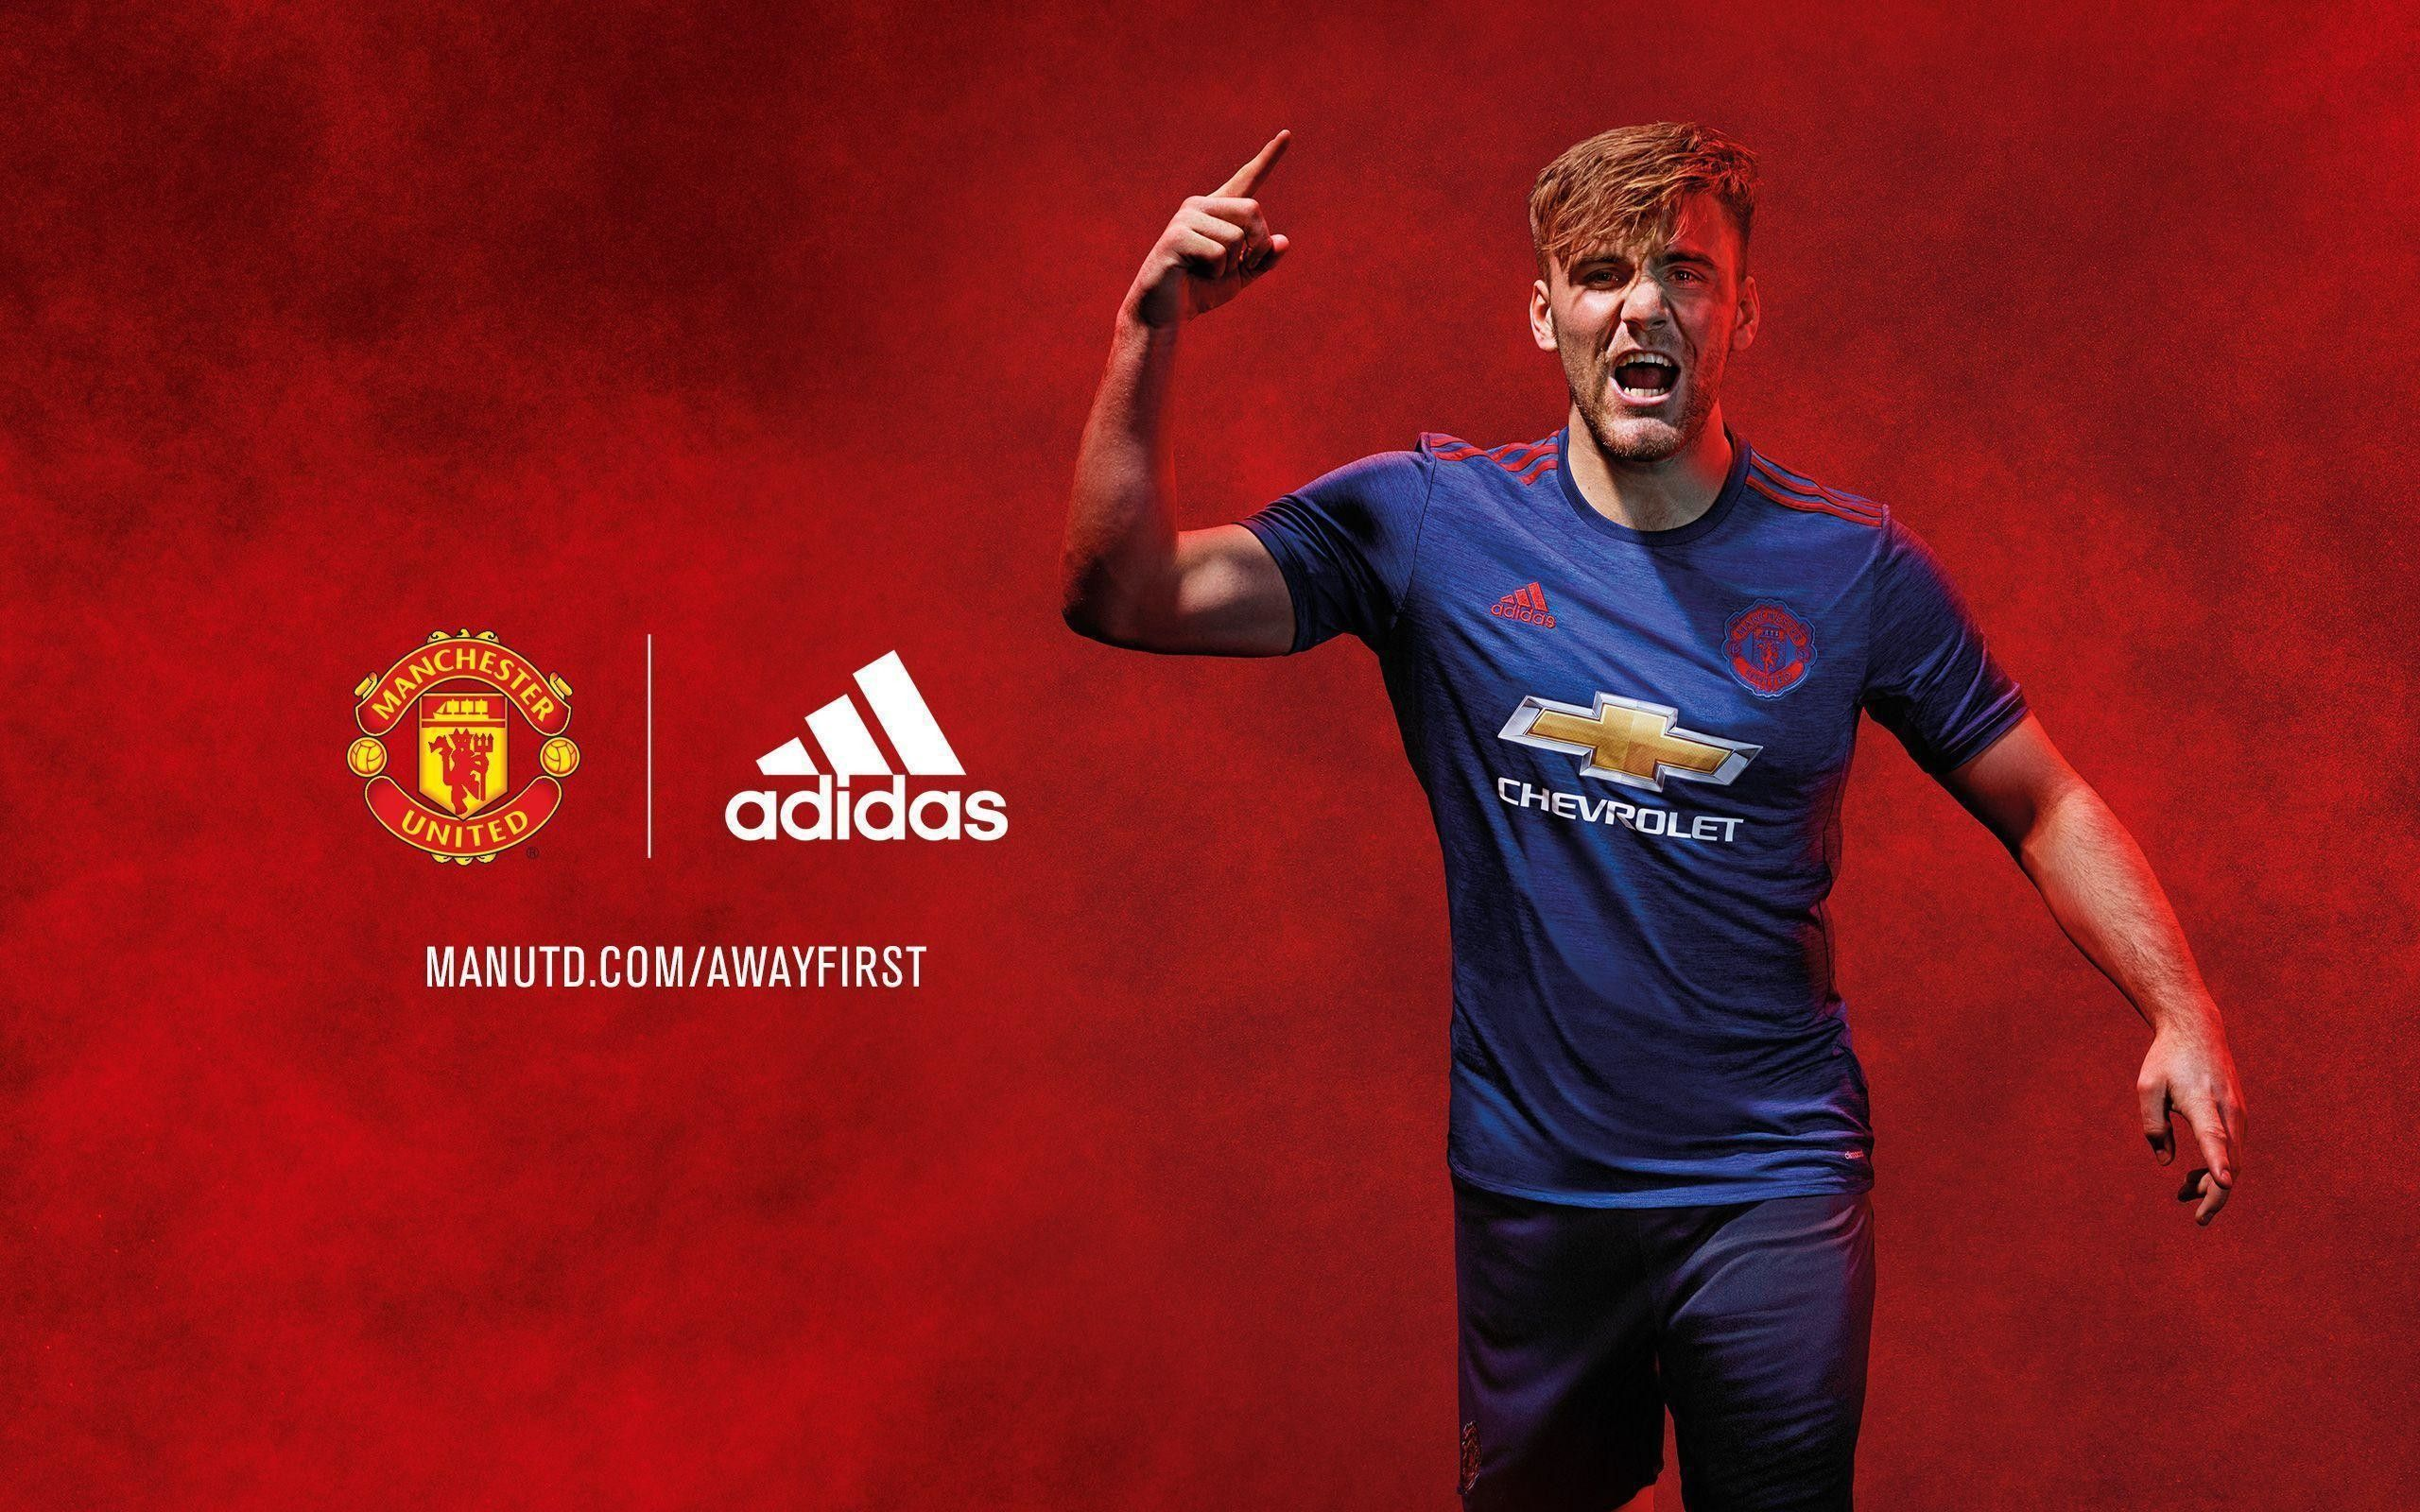 Manchester United Players 2020 Wallpapers Wallpaper Cave